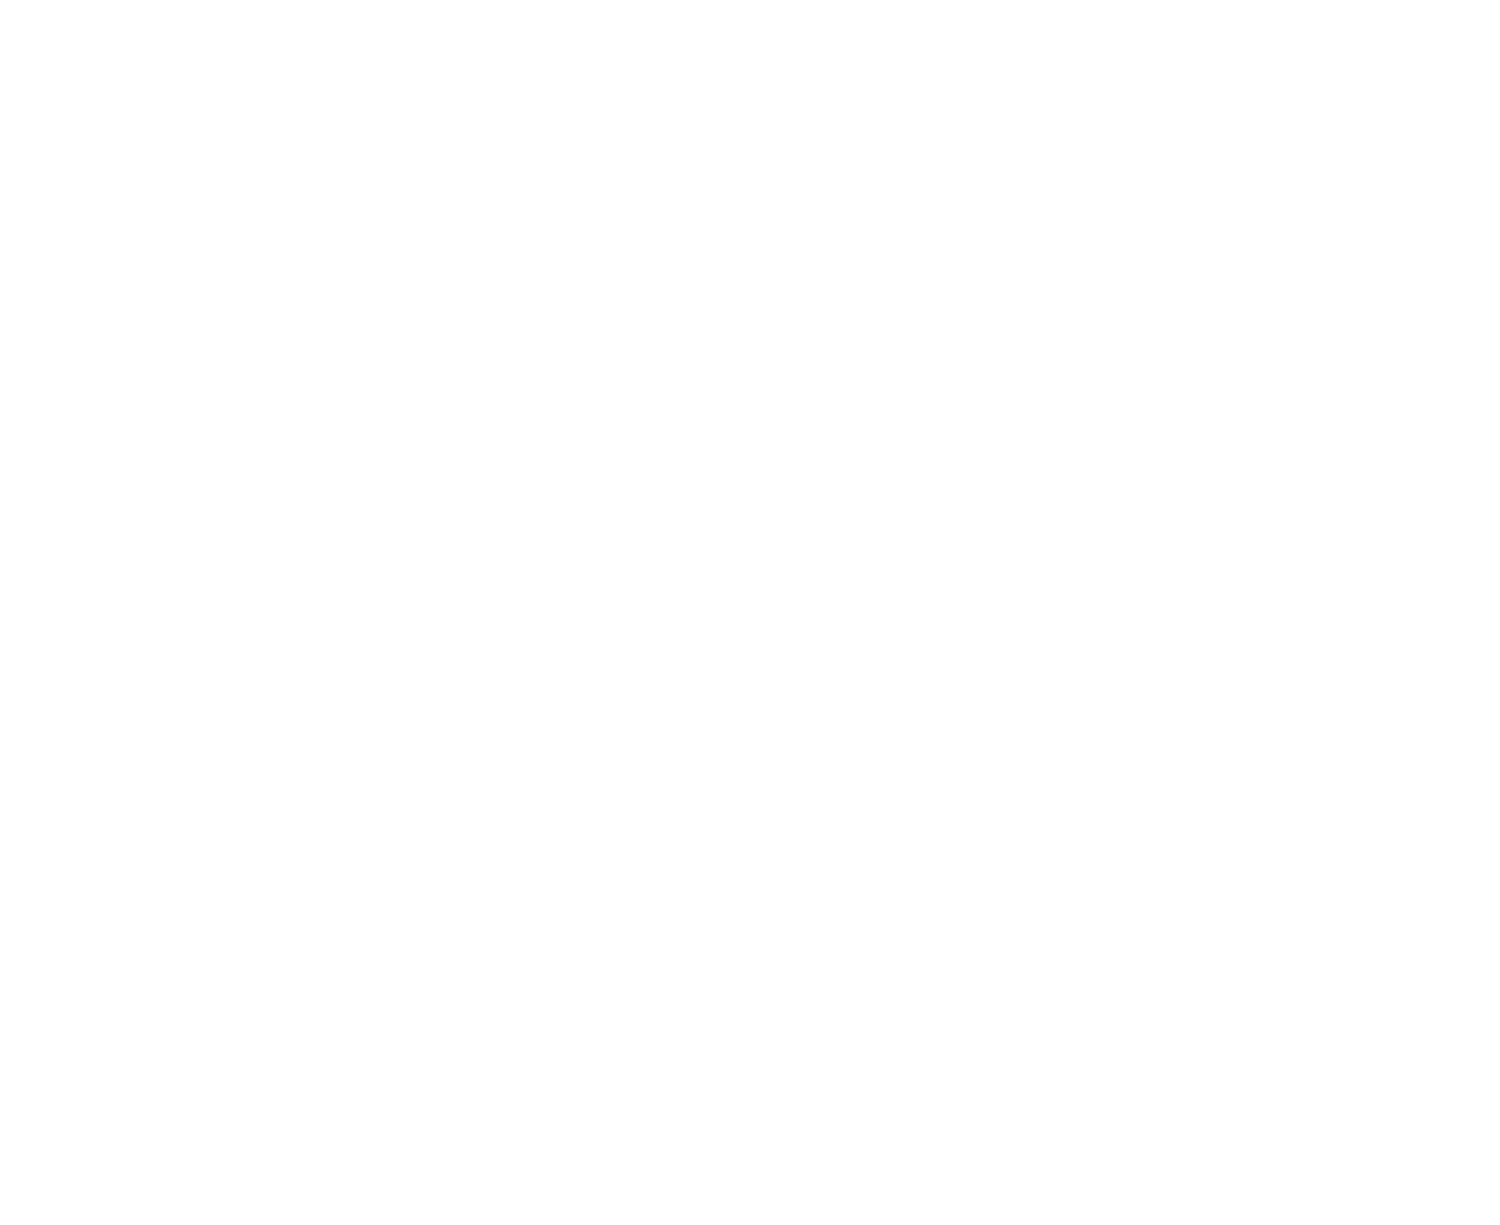 Pence Northwest Construction